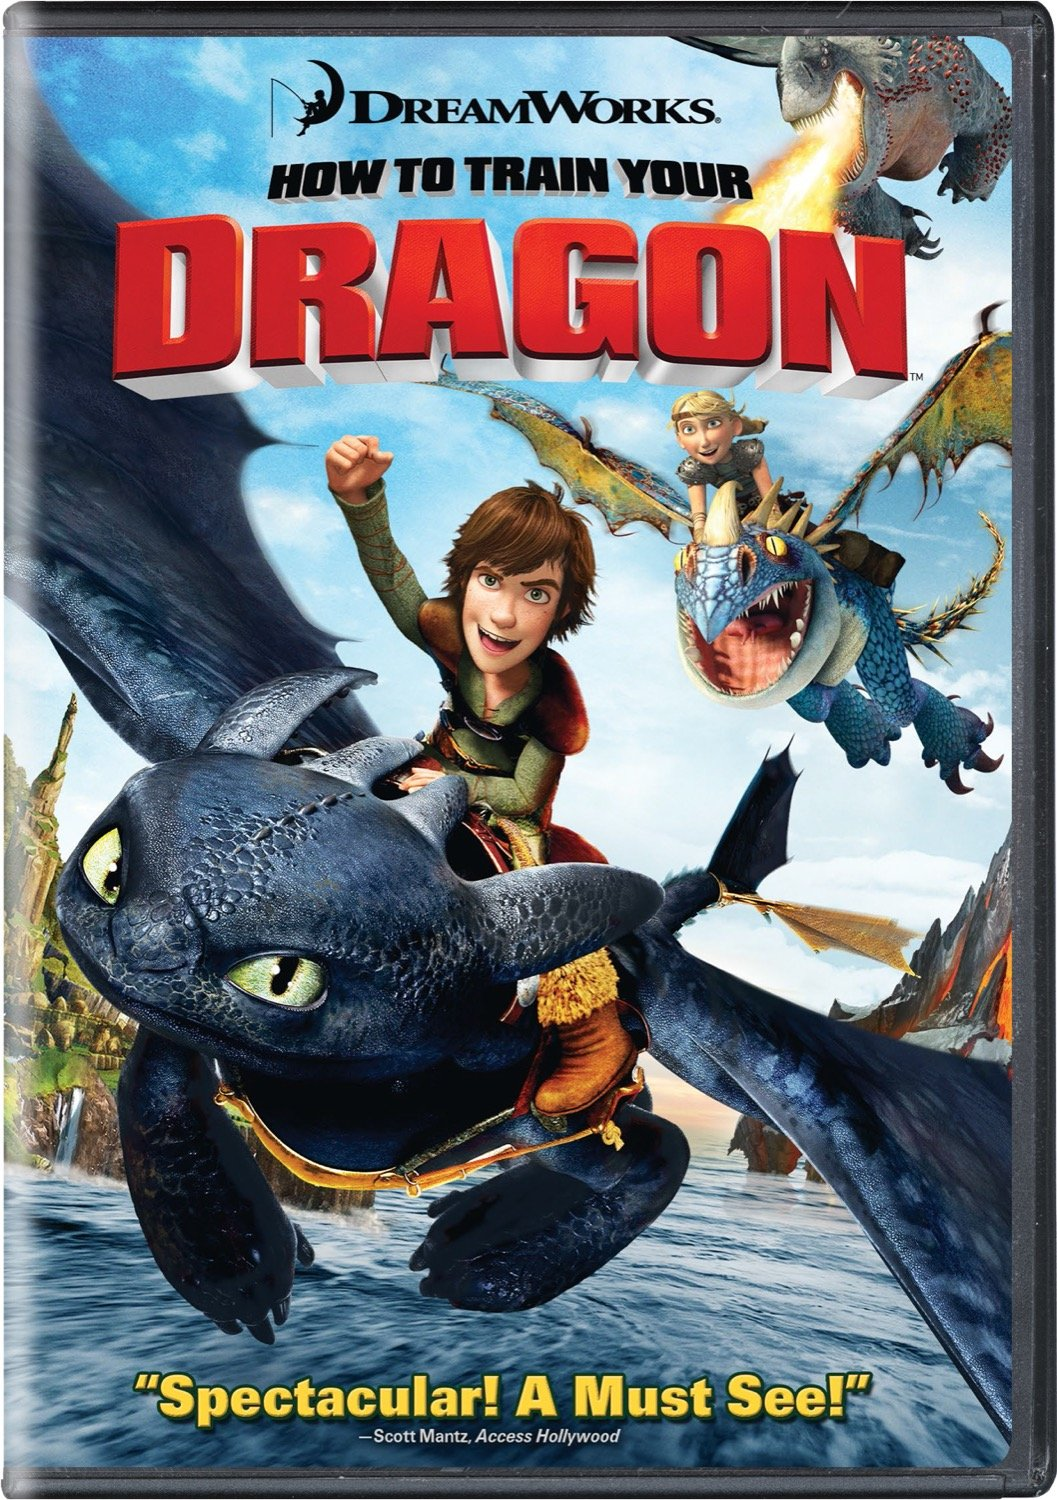 Amazon Com How To Train Your Dragon Jay Baruchel Gerard Butler Craig Ferguson America Ferrera Jonah Hill Christopher Mintz Plasse T J Miller Kristen Wiig Dean Deblois Chris Sanders Movies Tv